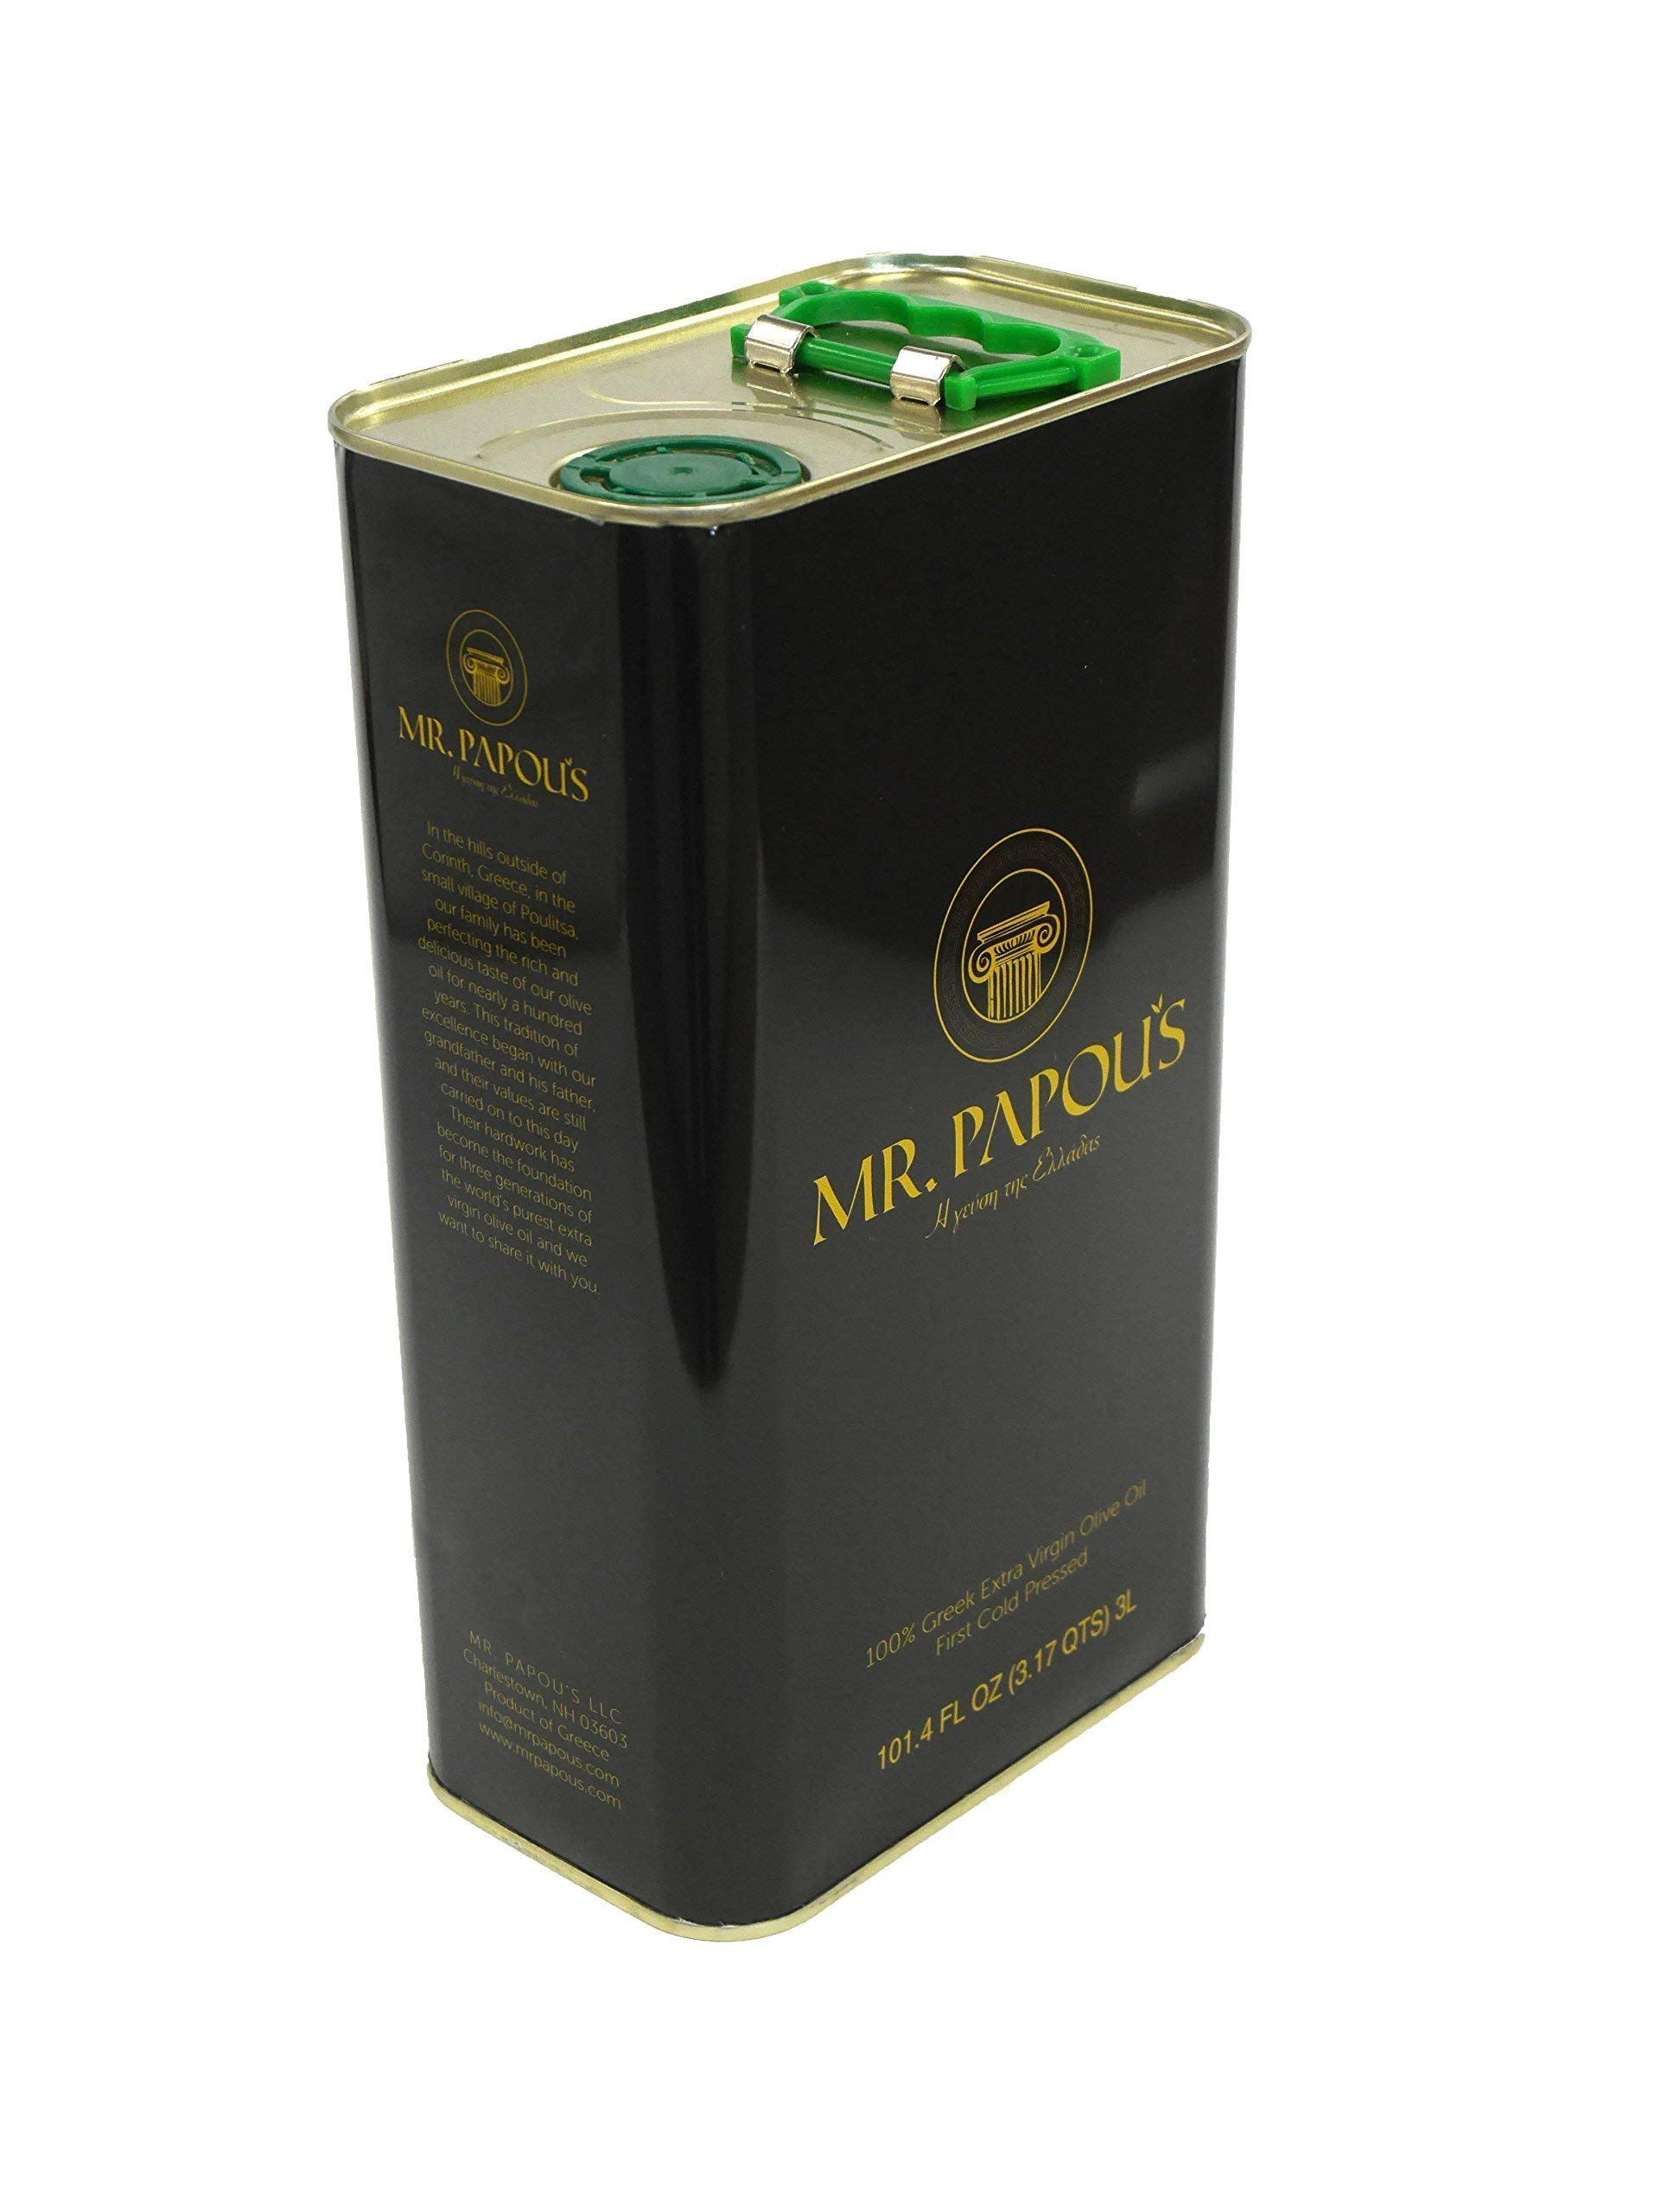 Mr. Papou's | Extra Virgin Olive Oil | First Cold Pressed | Family Owned | Harvested in Corinth, Greece | 3 Liter - 101.4 fl oz by Mr. Papou's (Image #1)